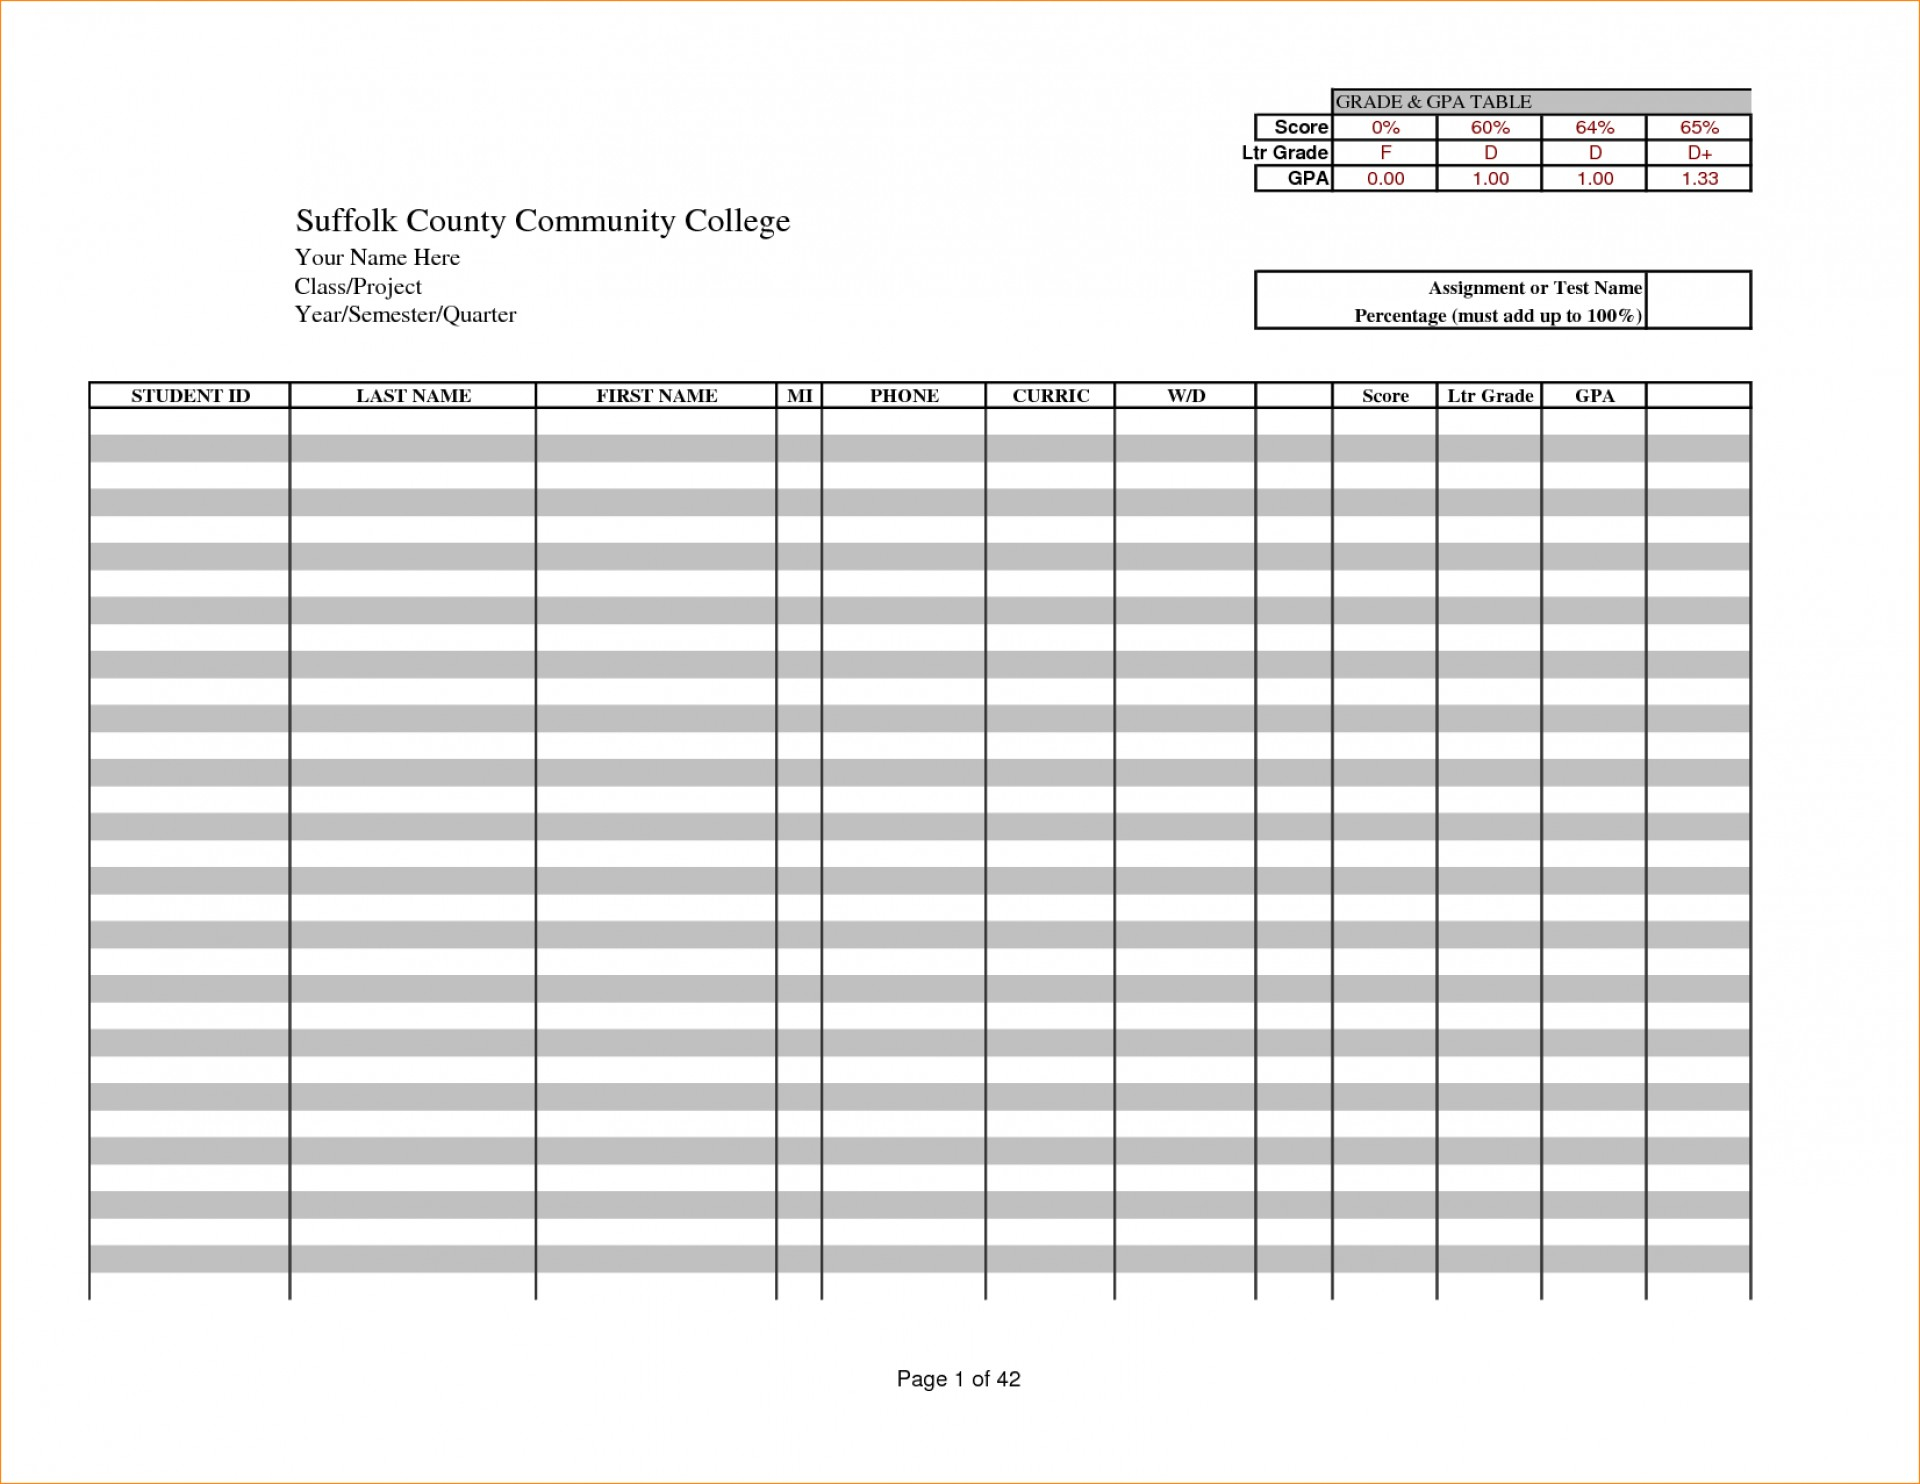 025 Teacher Grade Book Template Ideas Free Excel Gradebook 3605 - Free Printable Gradebook